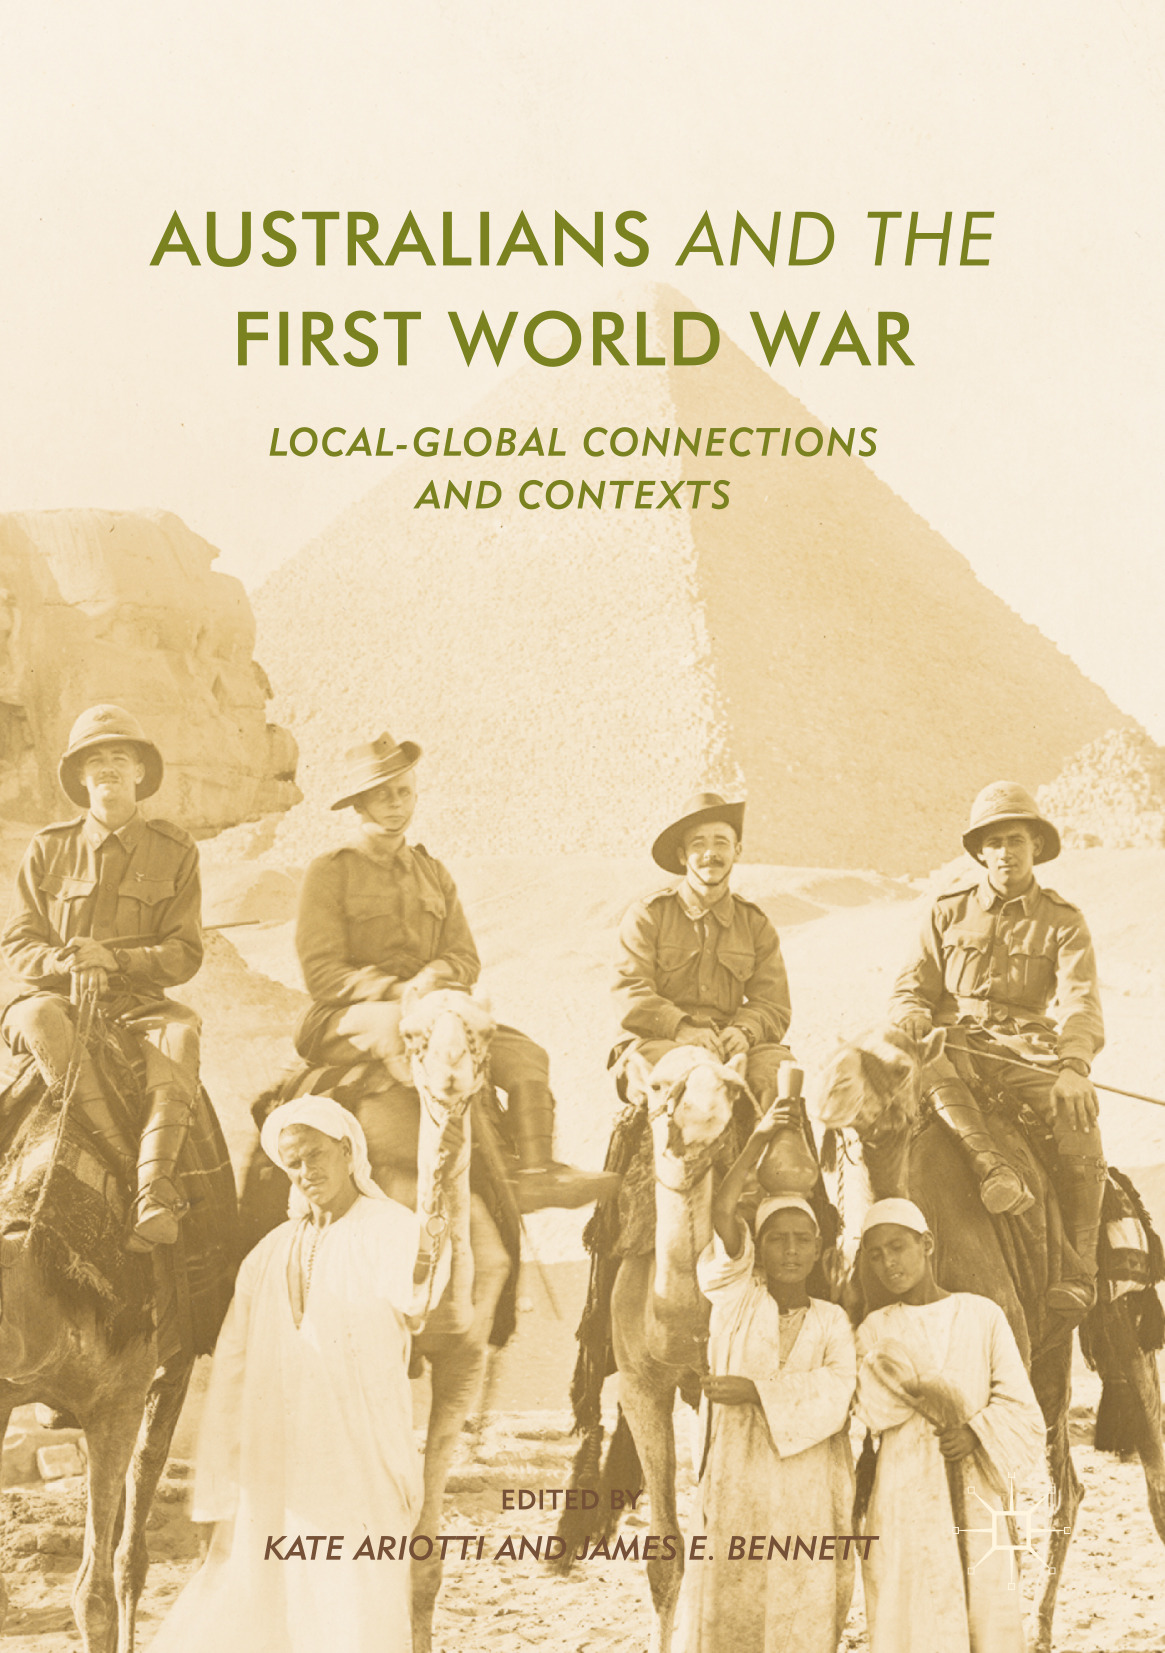 Ariotti, Kate - Australians and the First World War, ebook